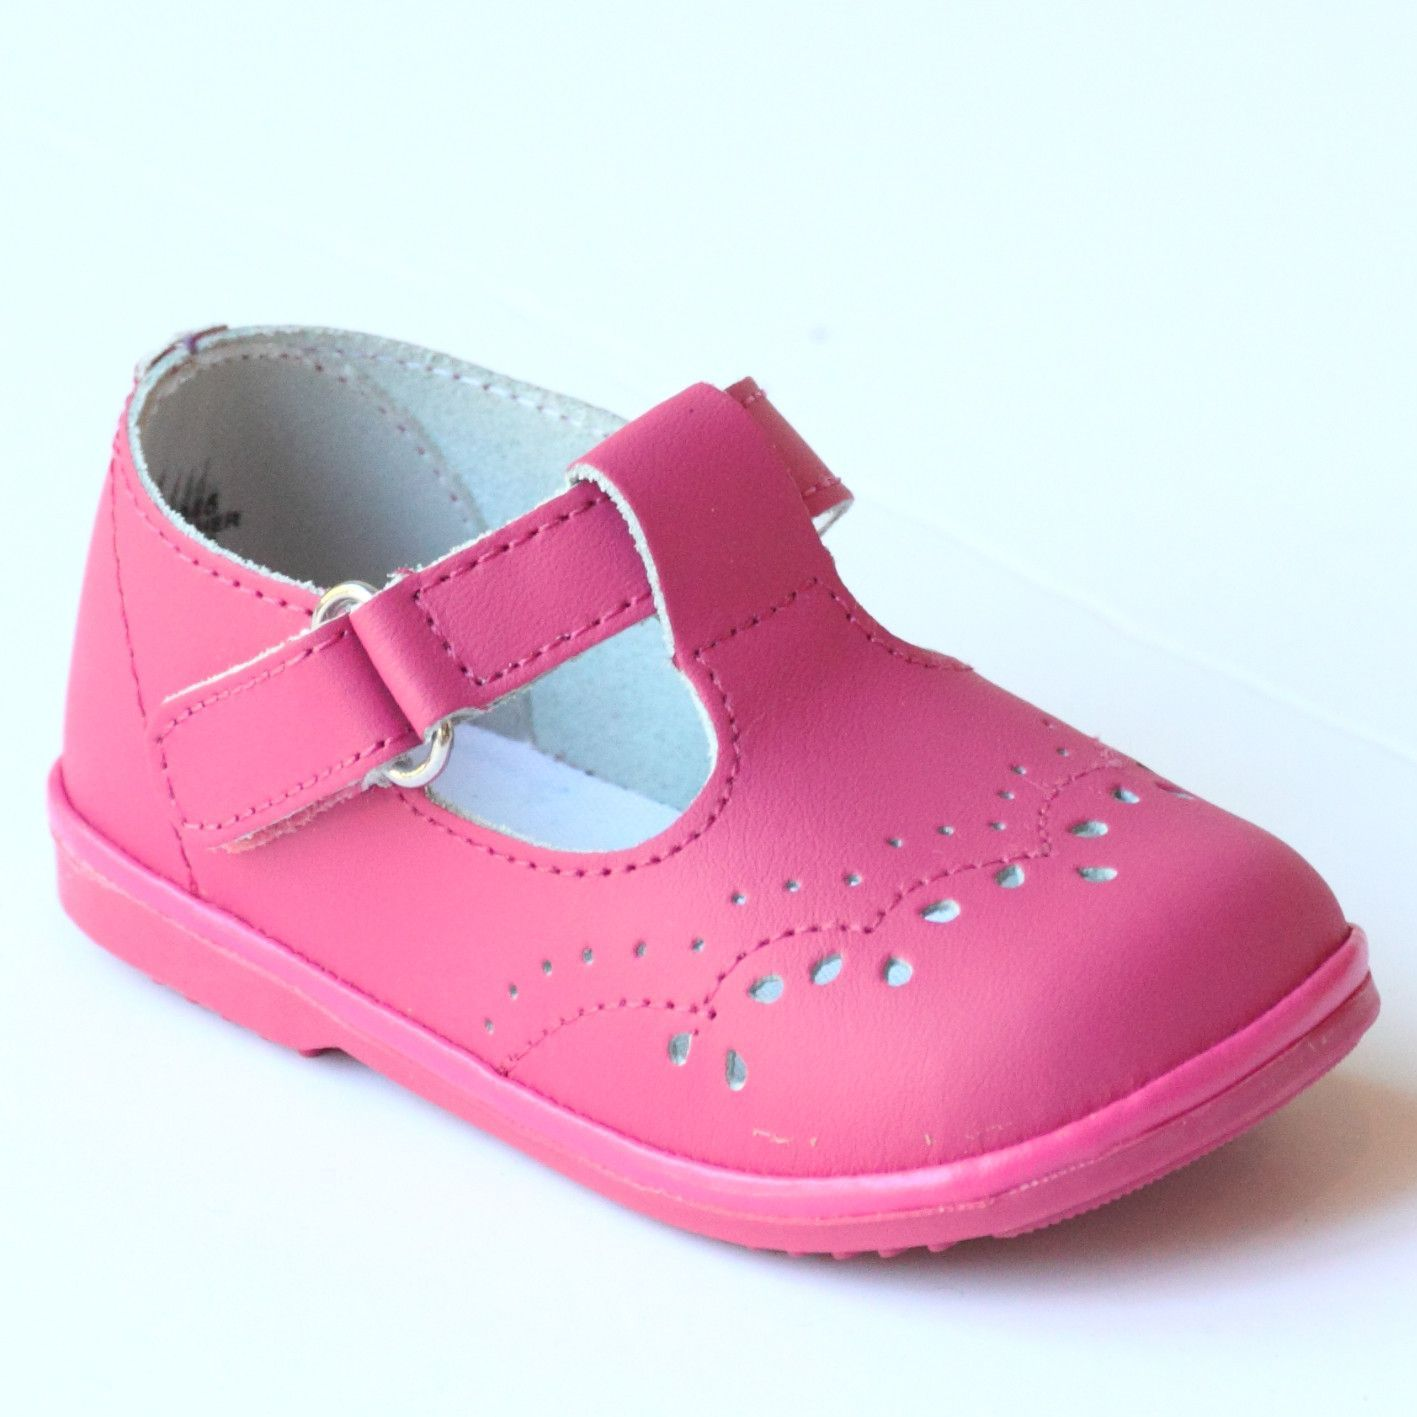 423a5d5fa76cd Angel Baby Girls Fuchsia Leather T-Strap Mary Janes